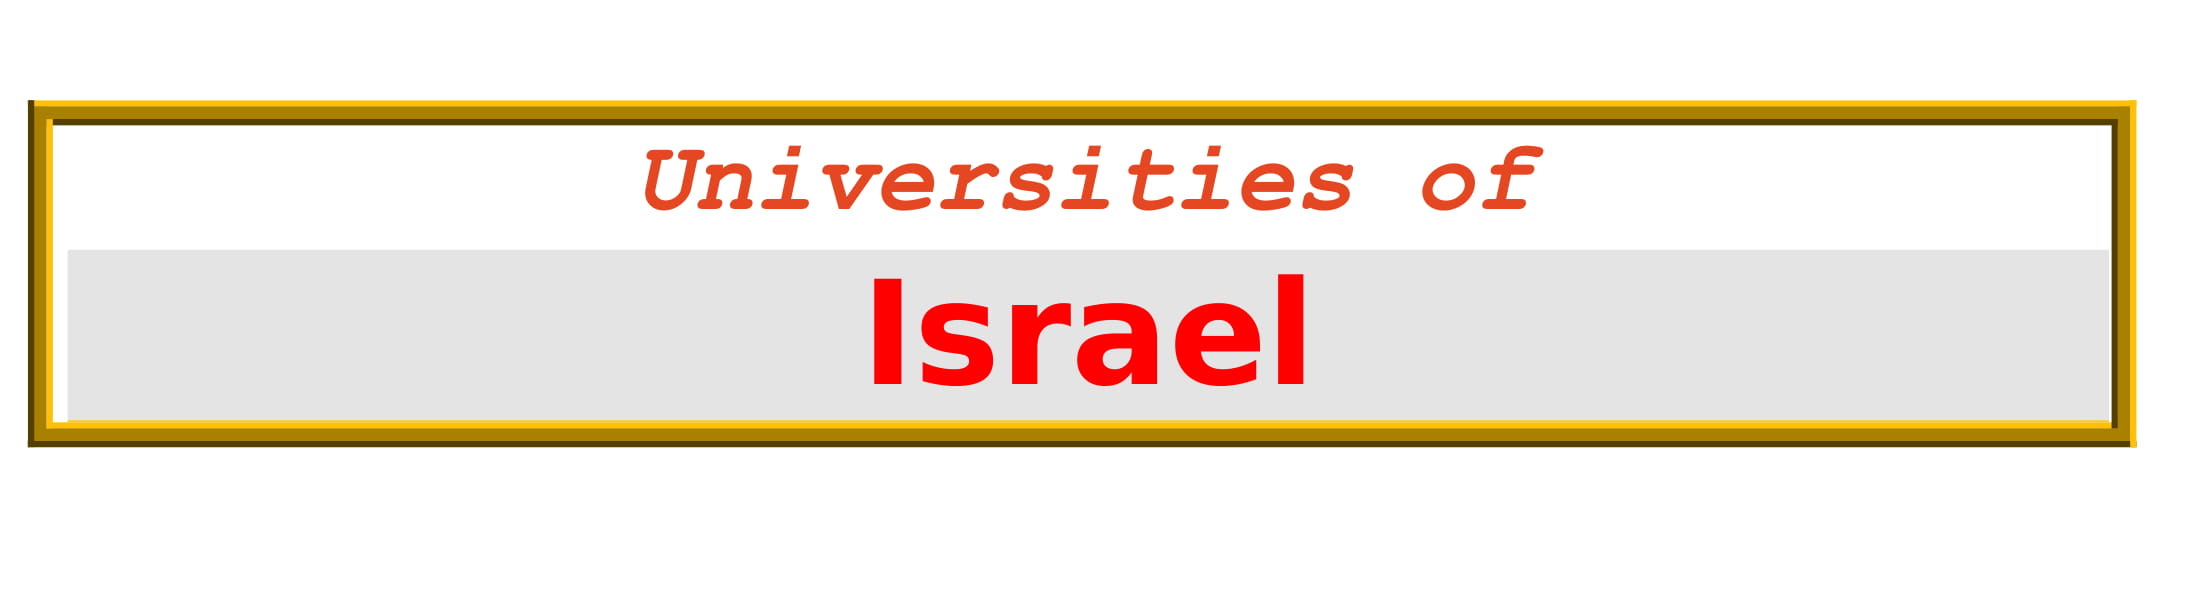 List of Universities in Israel